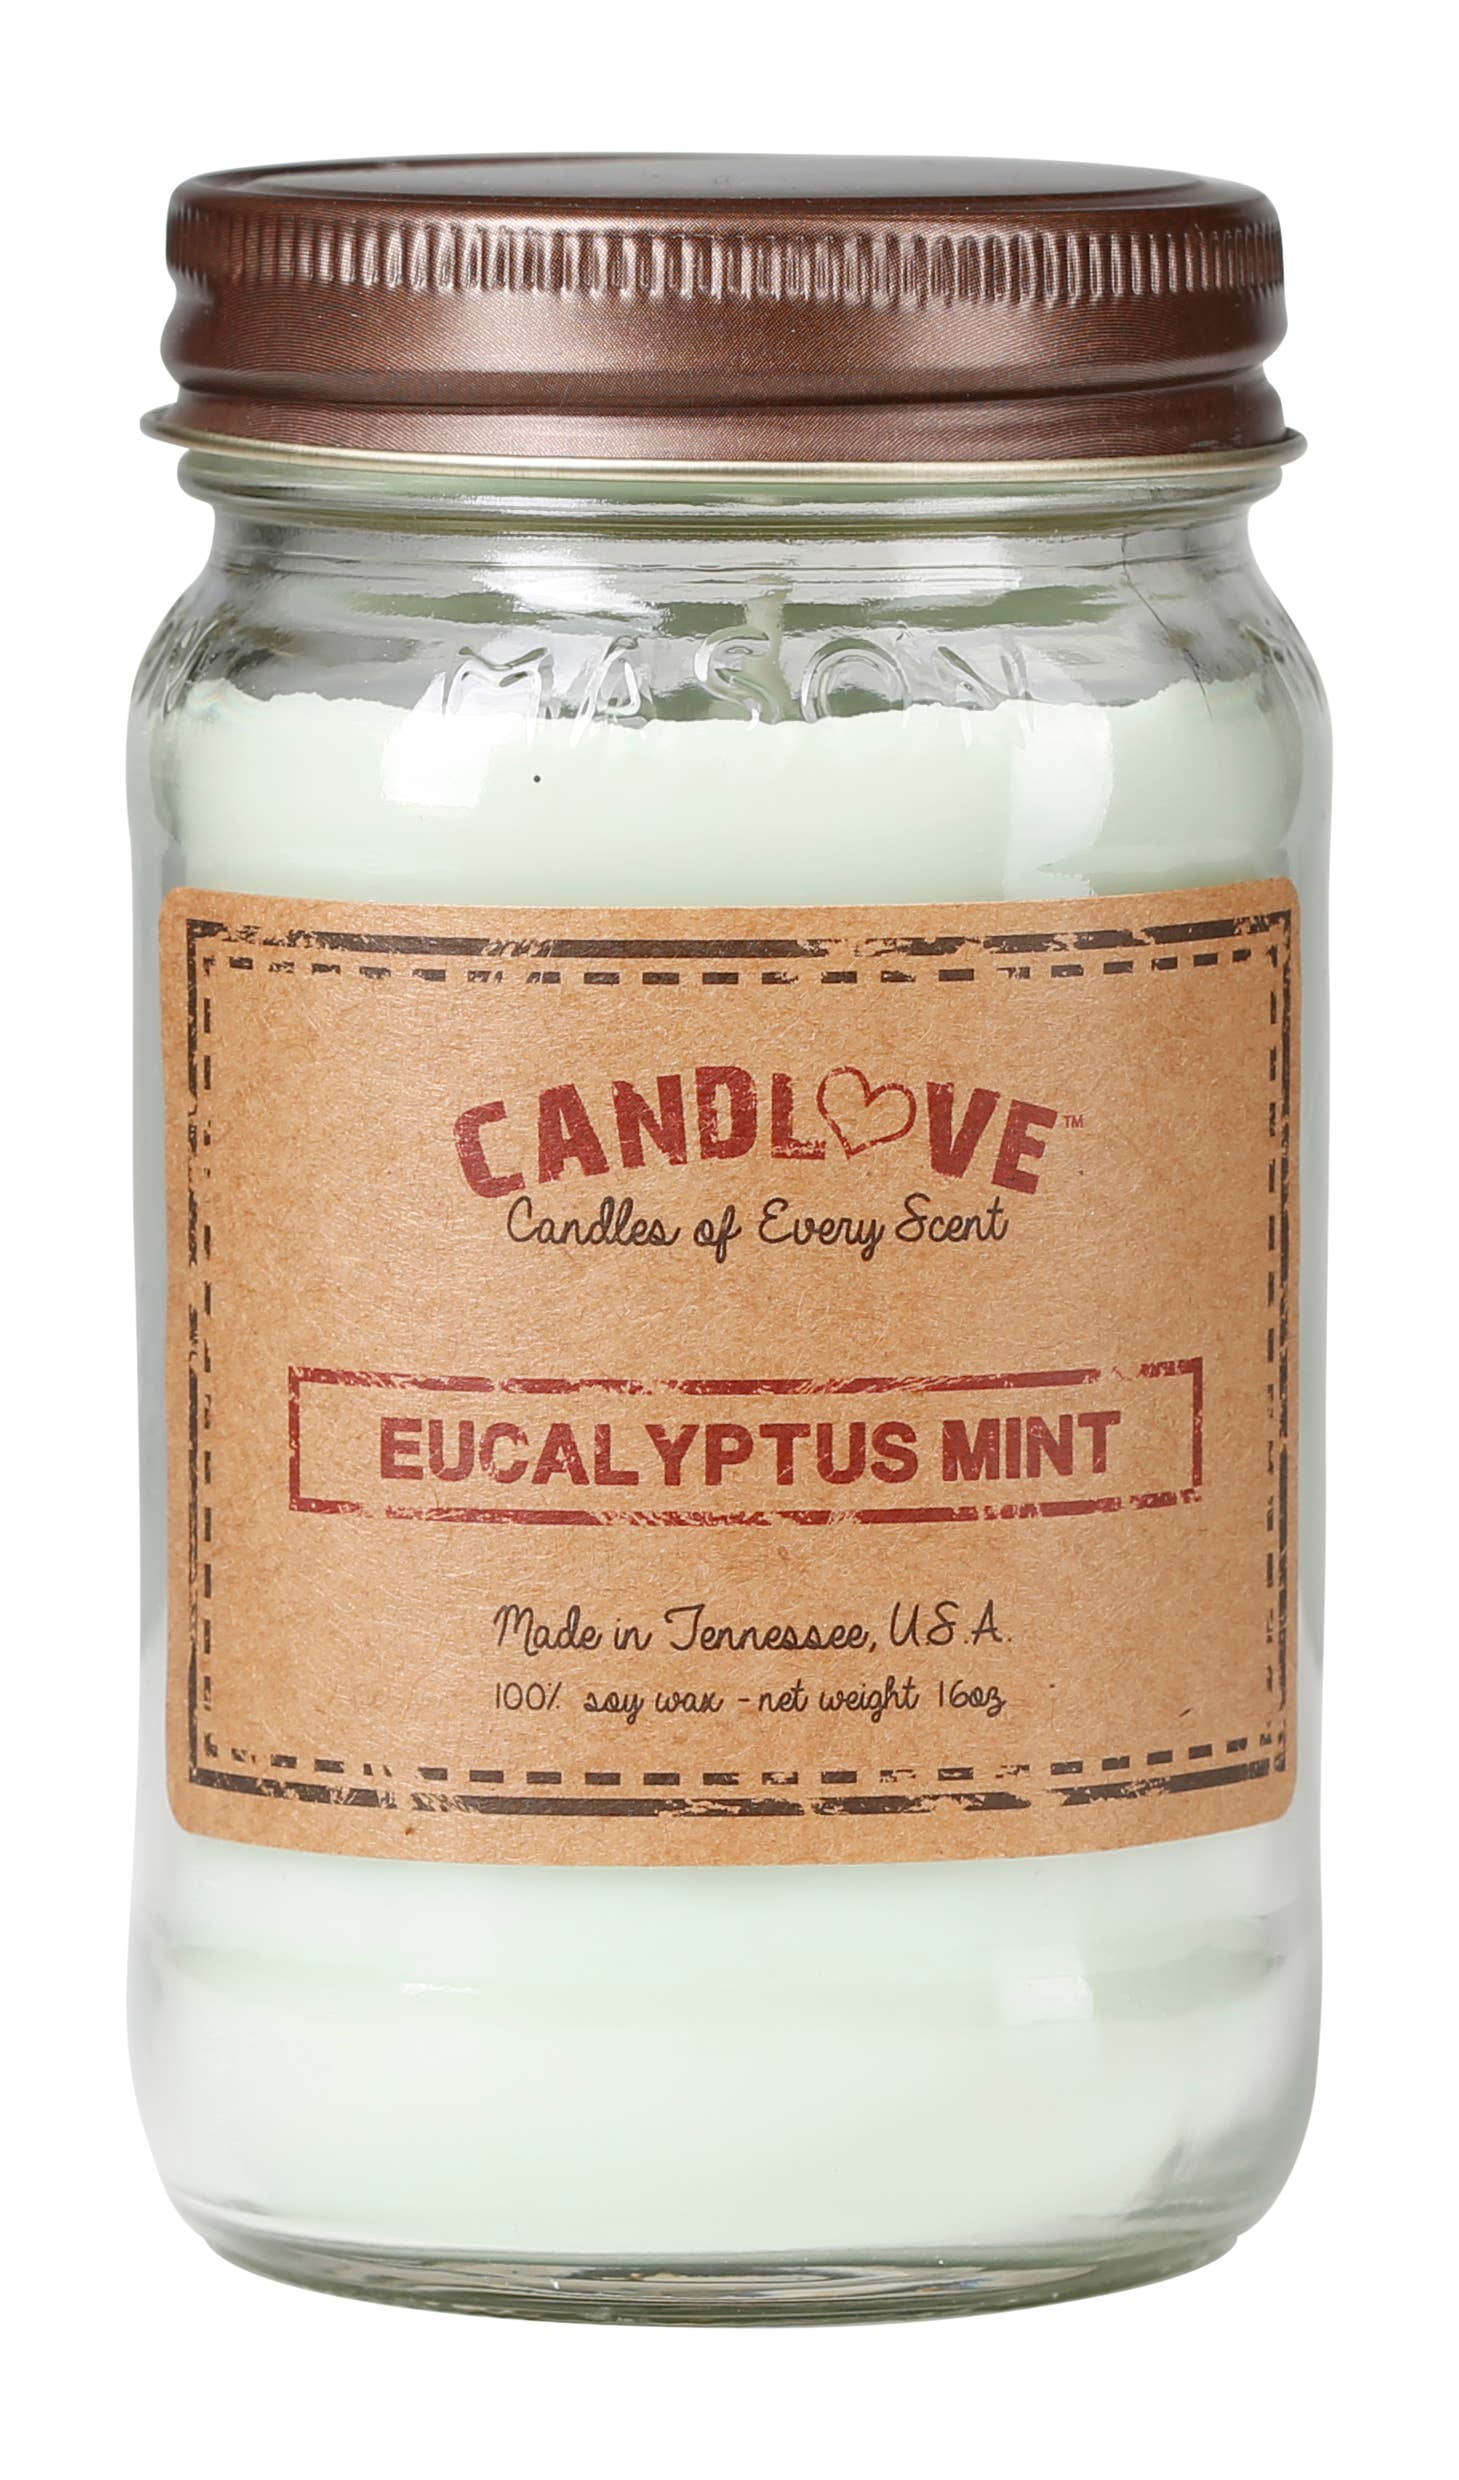 Soy Wax Scented Candle - Eucalyptus Mint